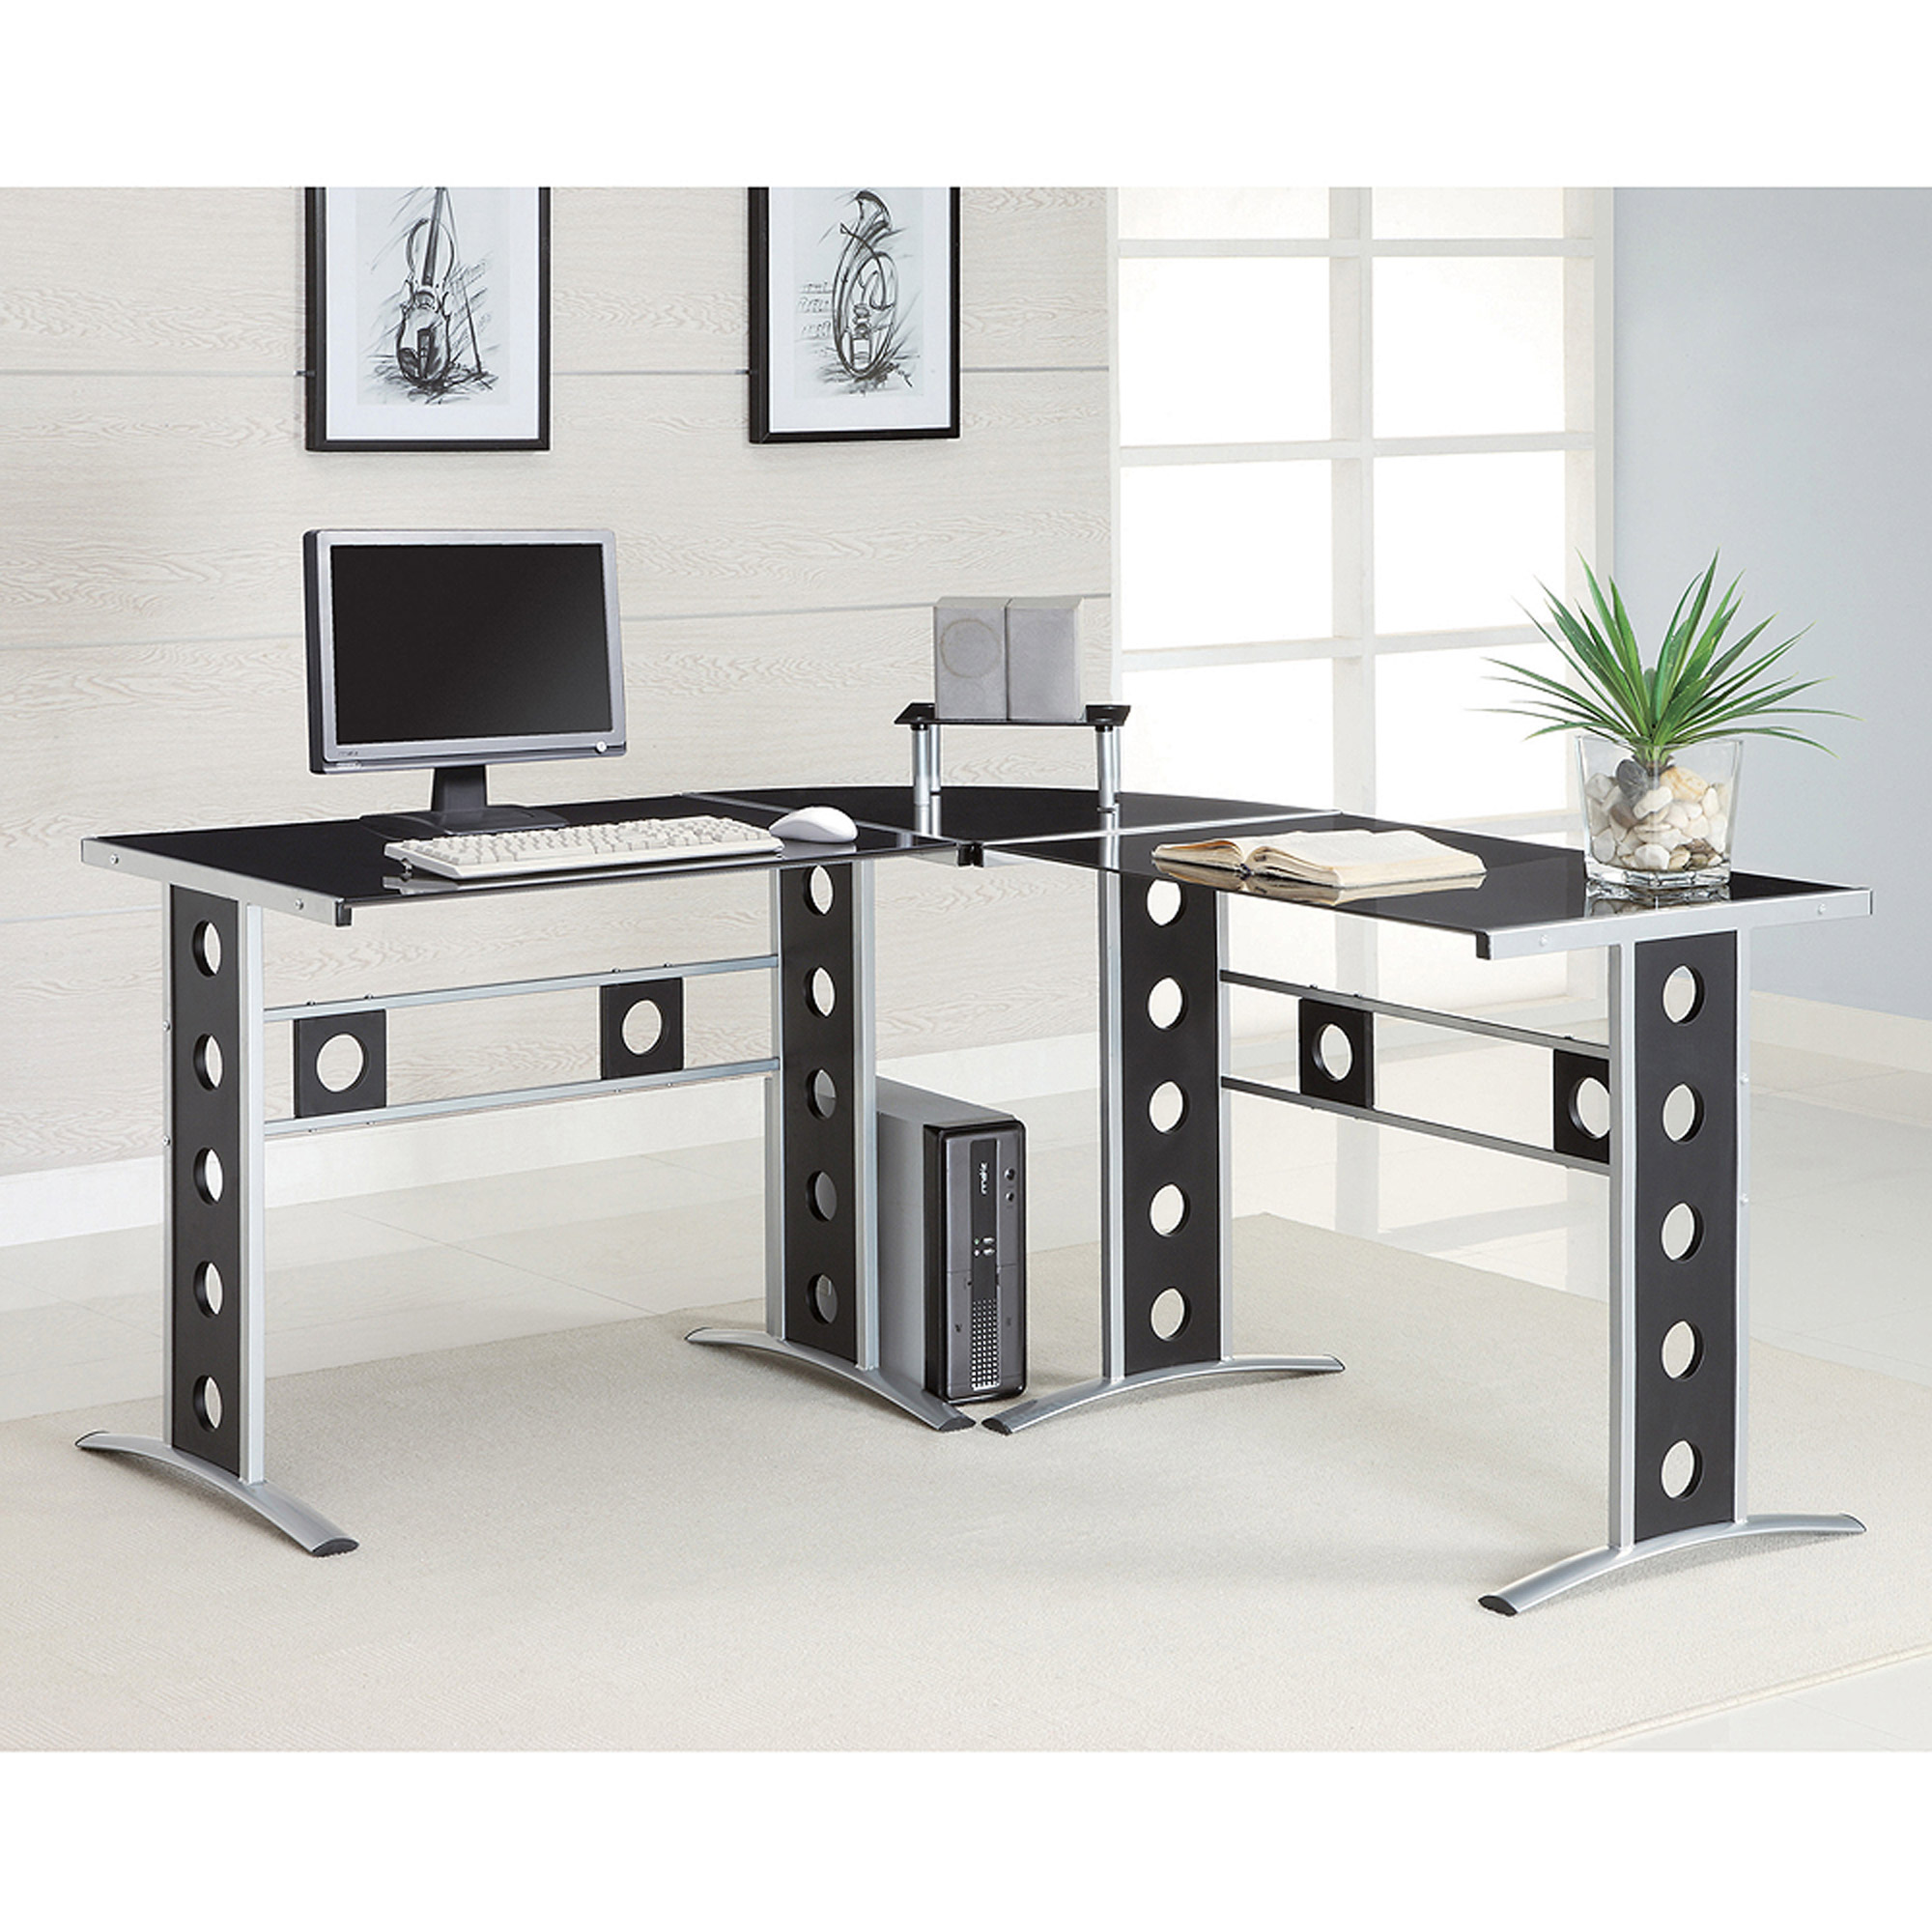 Coaster Contemporary Computer Desk